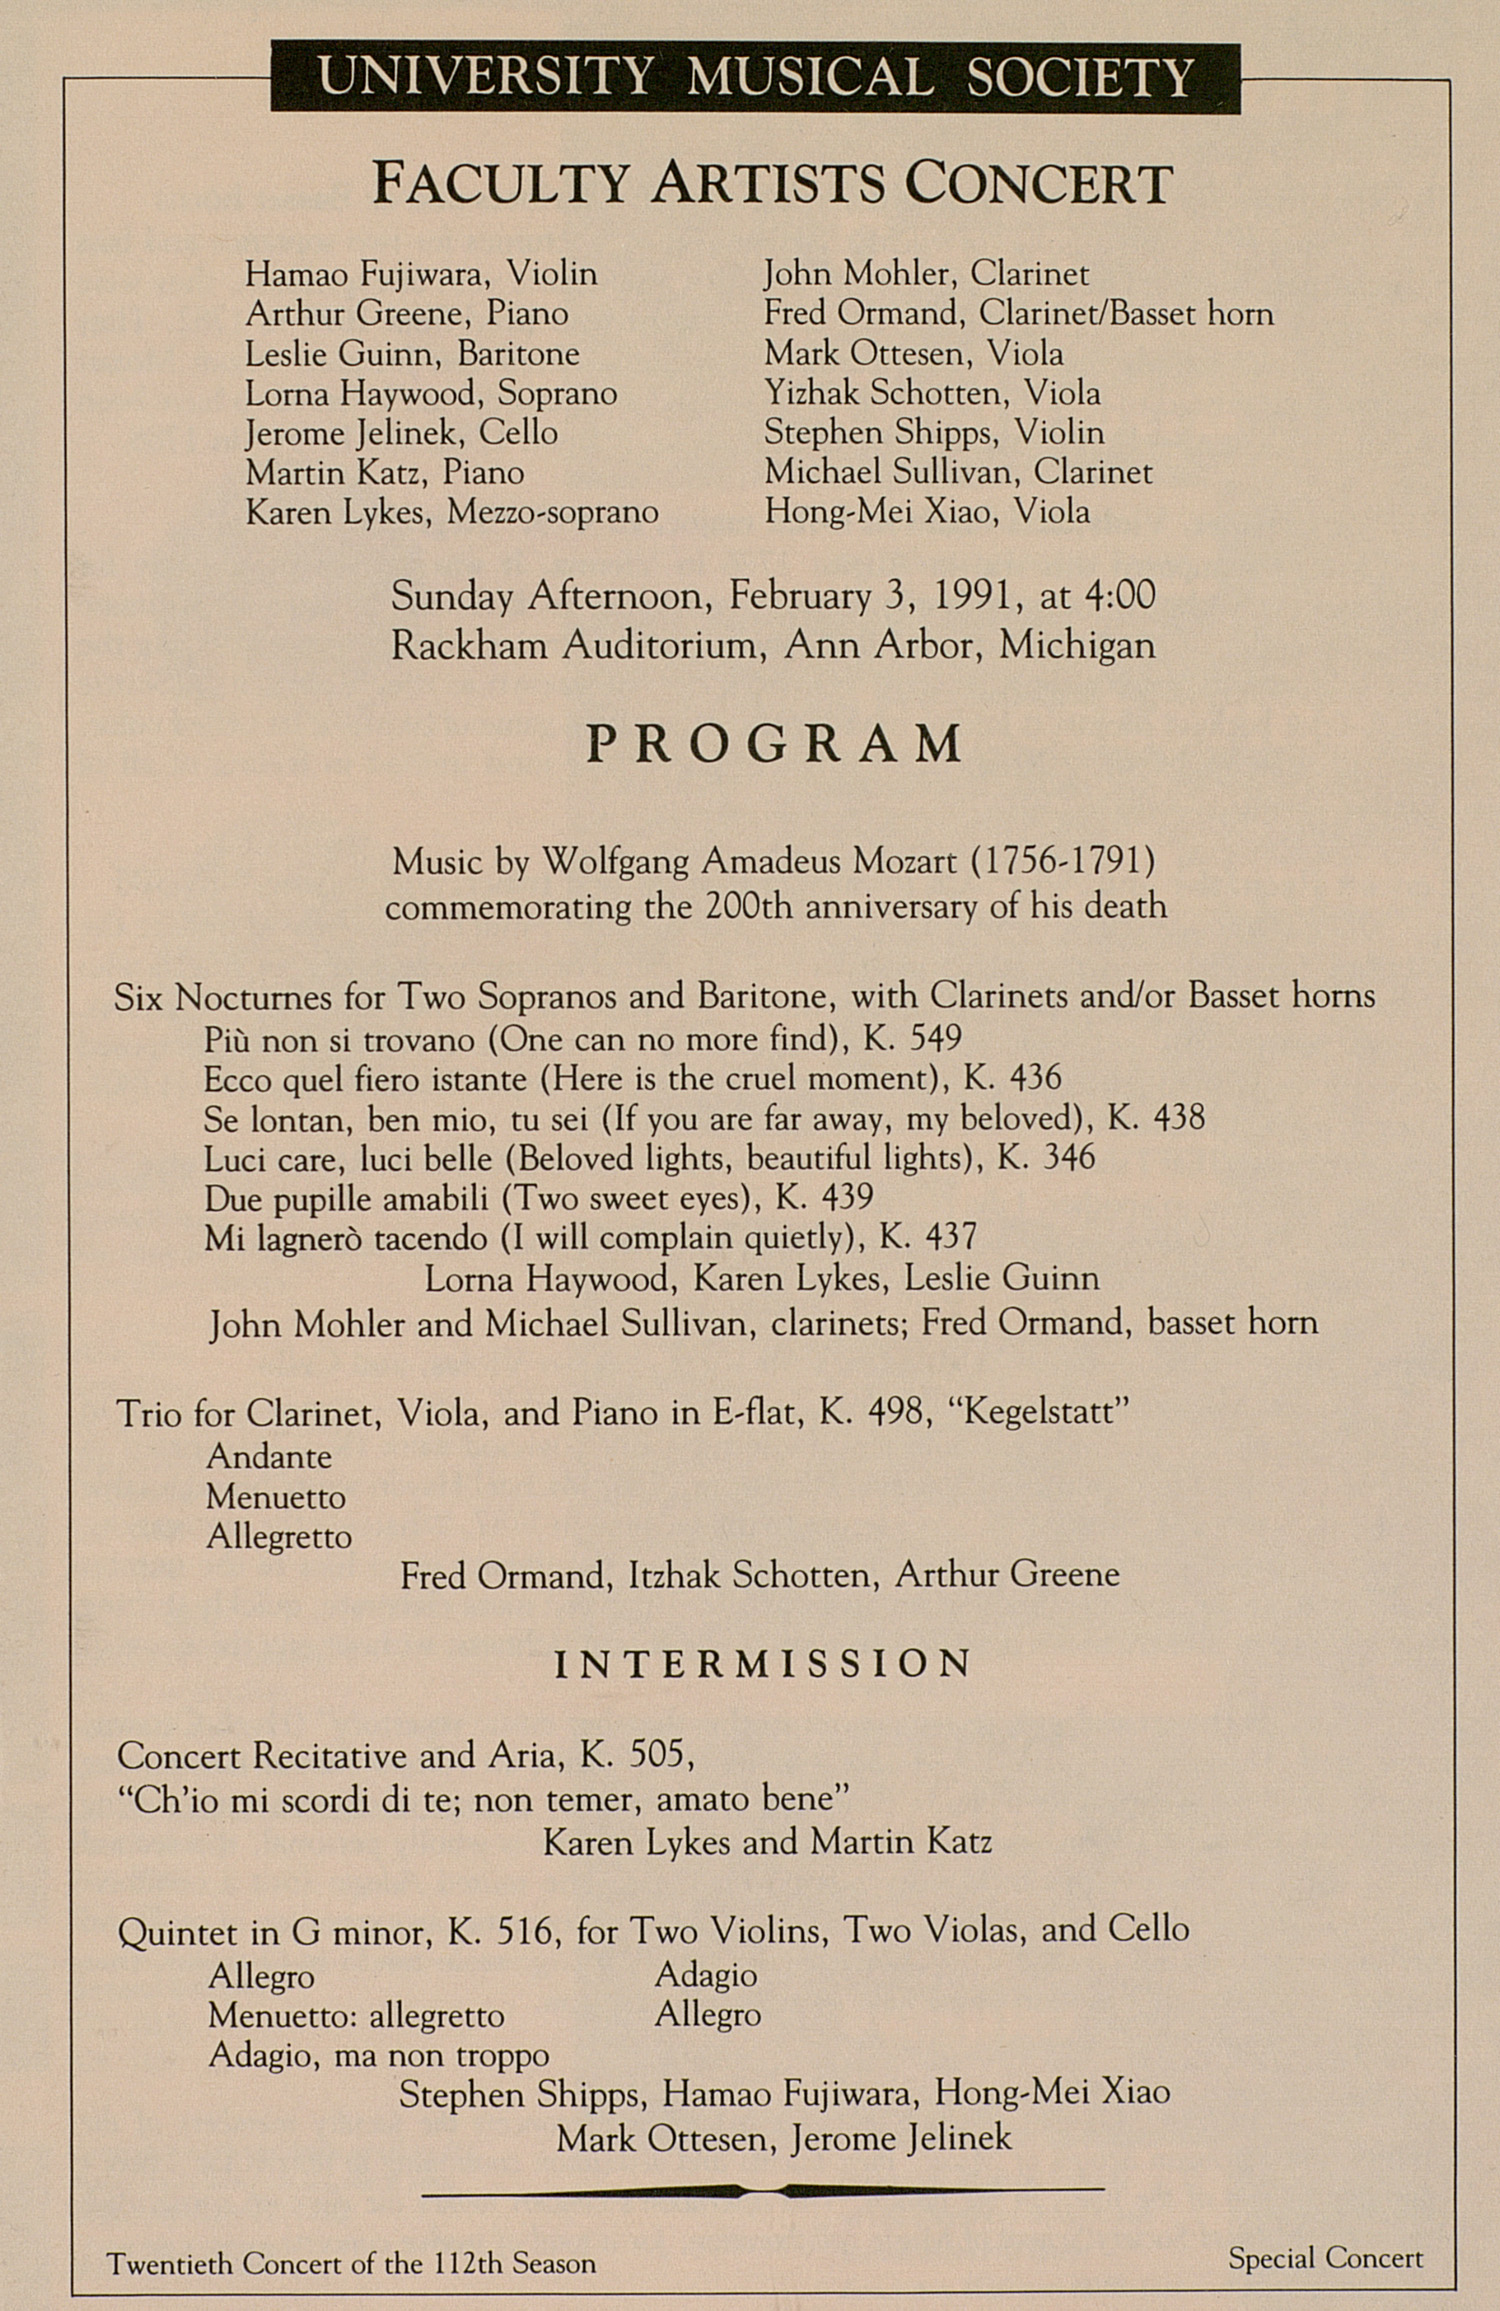 UMS Concert Program, February 3, 1991: Faculty Artists Concert --  image